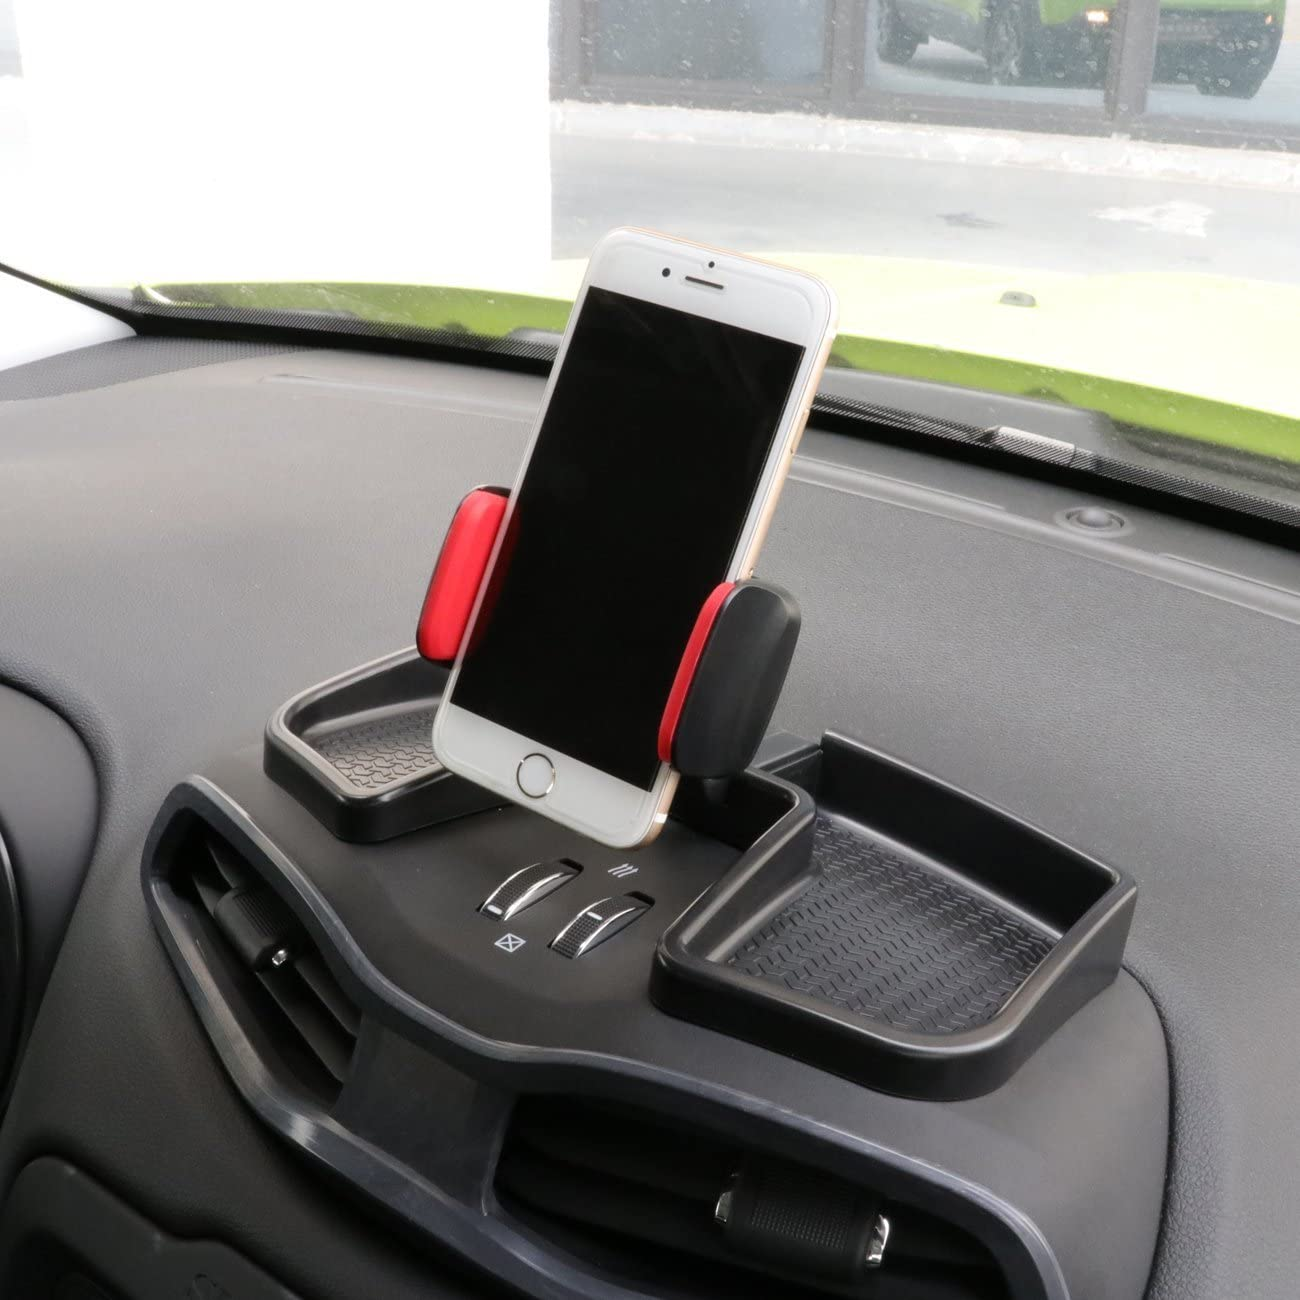 Yoursme Phone iPhone Holder Black/&Red Car Dash 360 Degree Rotate ABS Storage Box Portable Mount Stand Kit Fit for Jeep Renegade 2015 2016 2017 2018